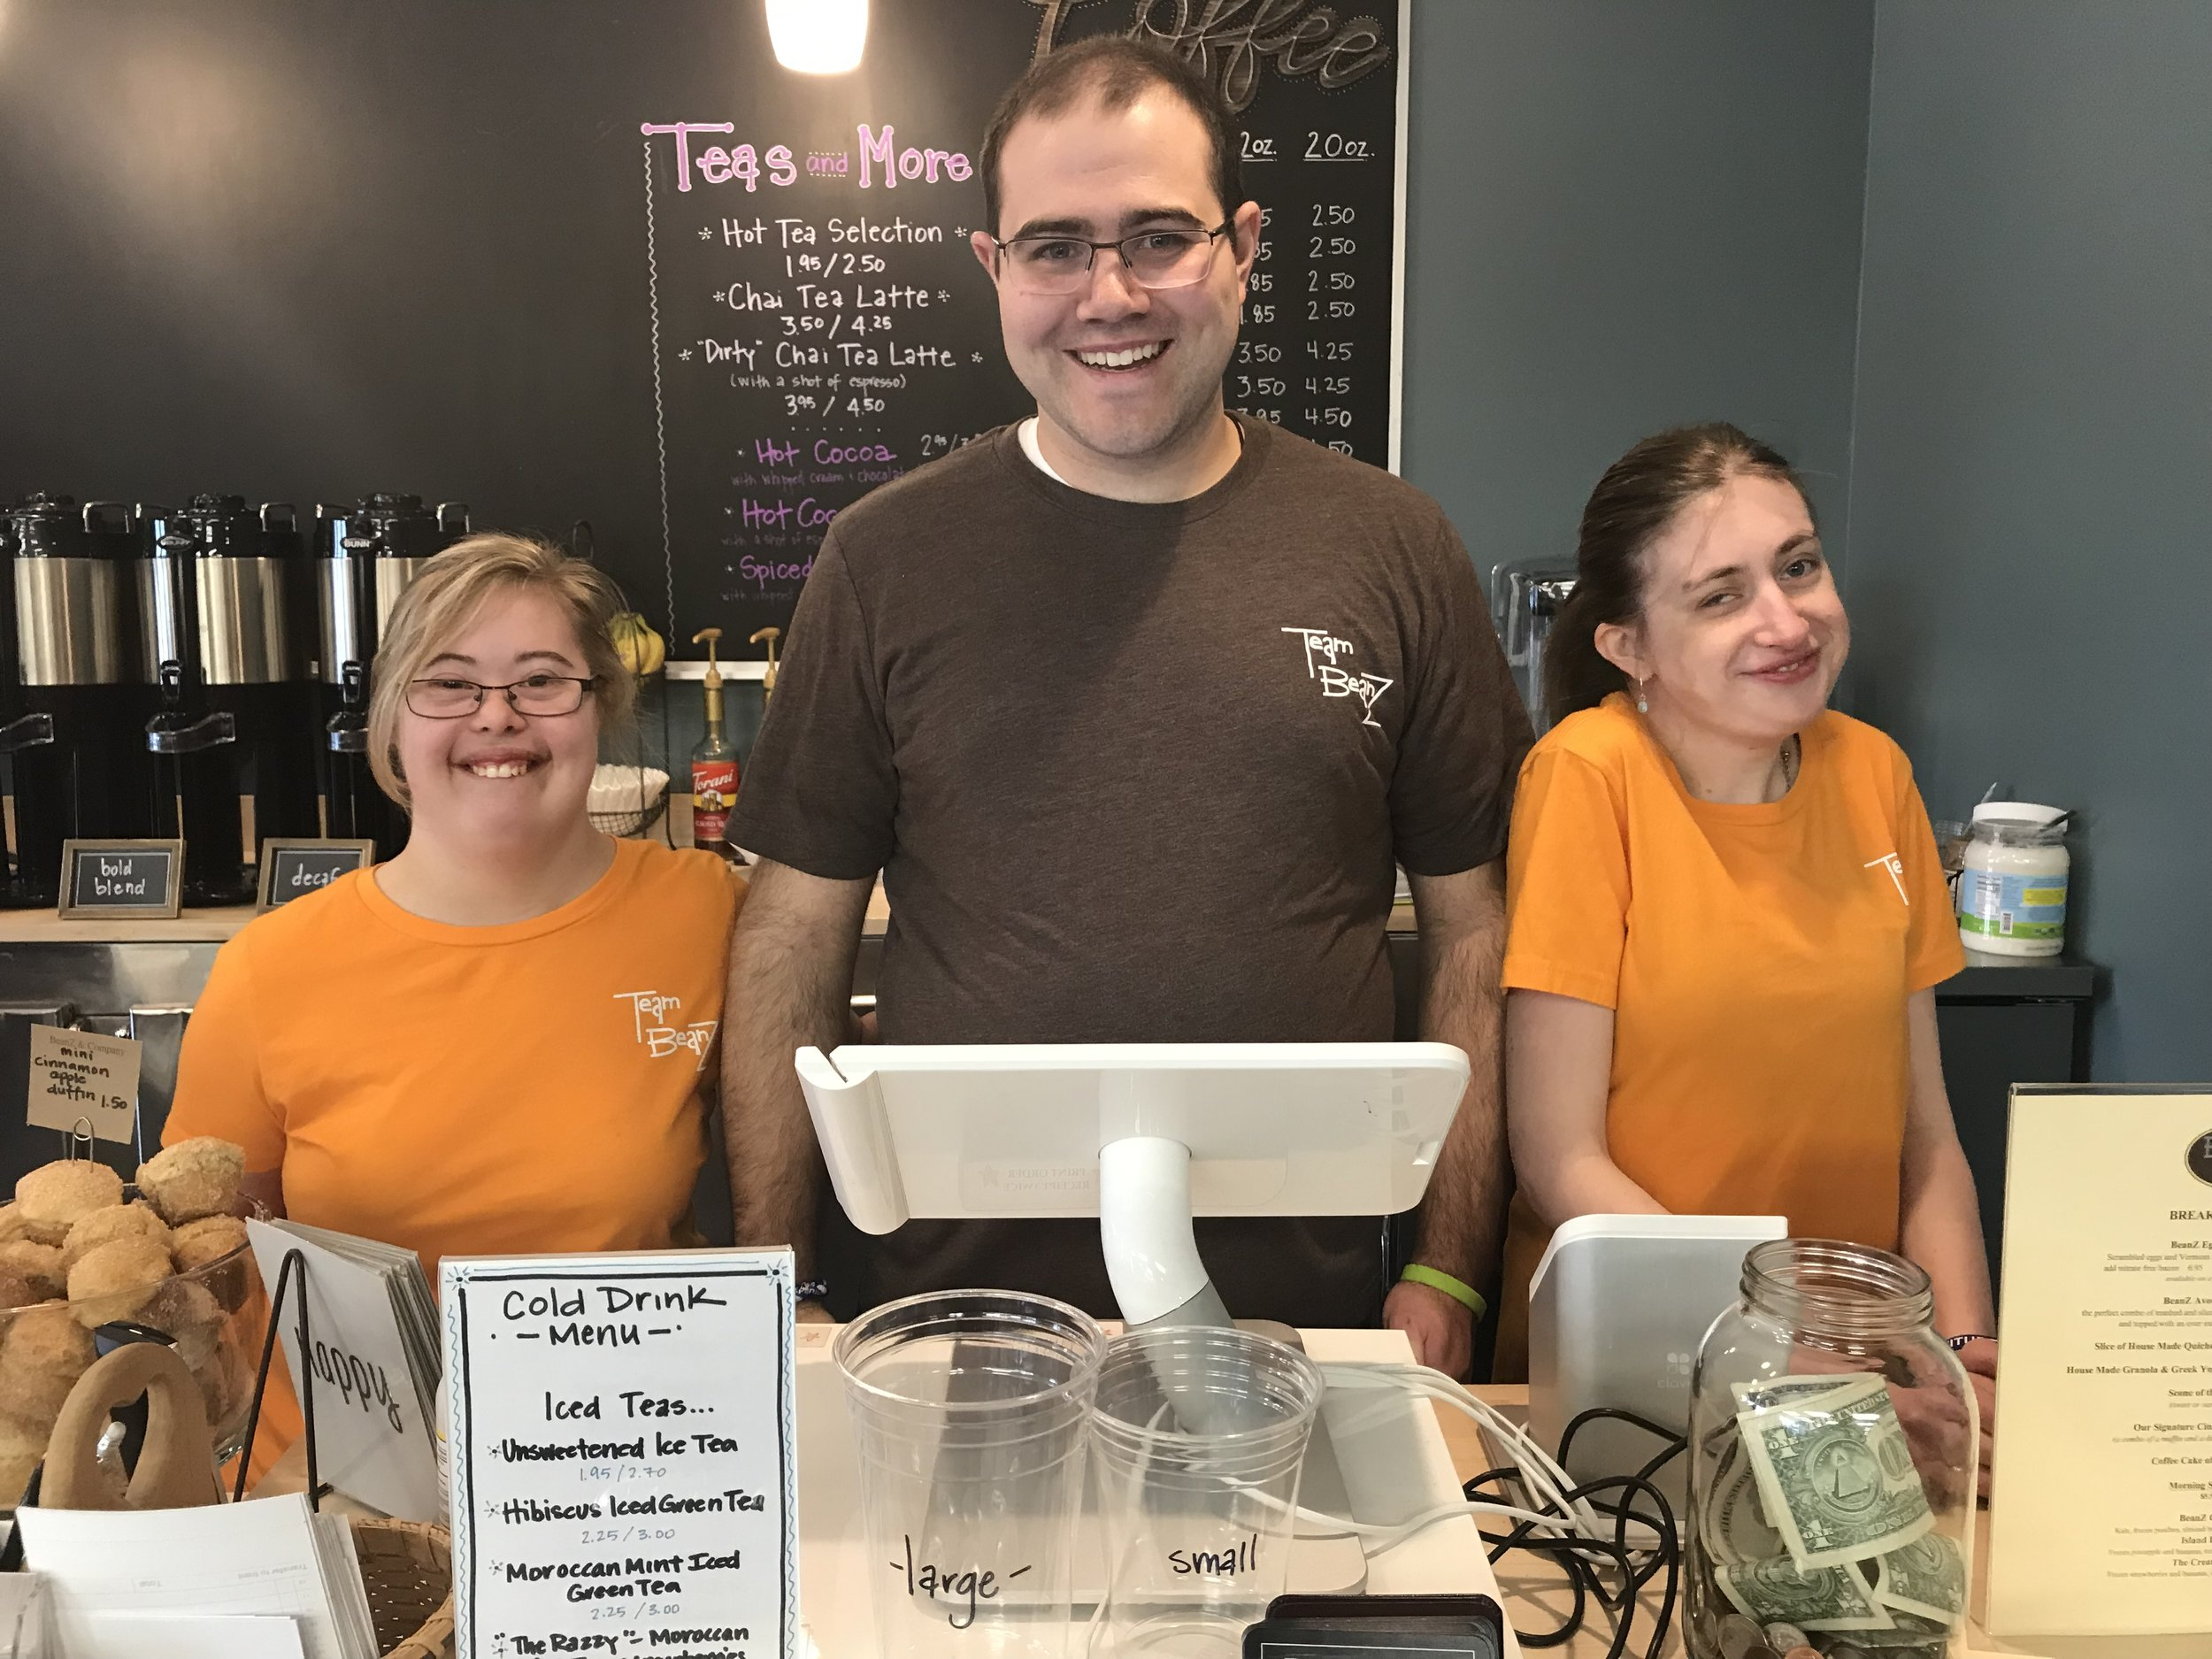 From Left to Right: Jess Sahlman, Nick Sinacori and Lauren Traceski part of the Team BeanZ lunch crew.